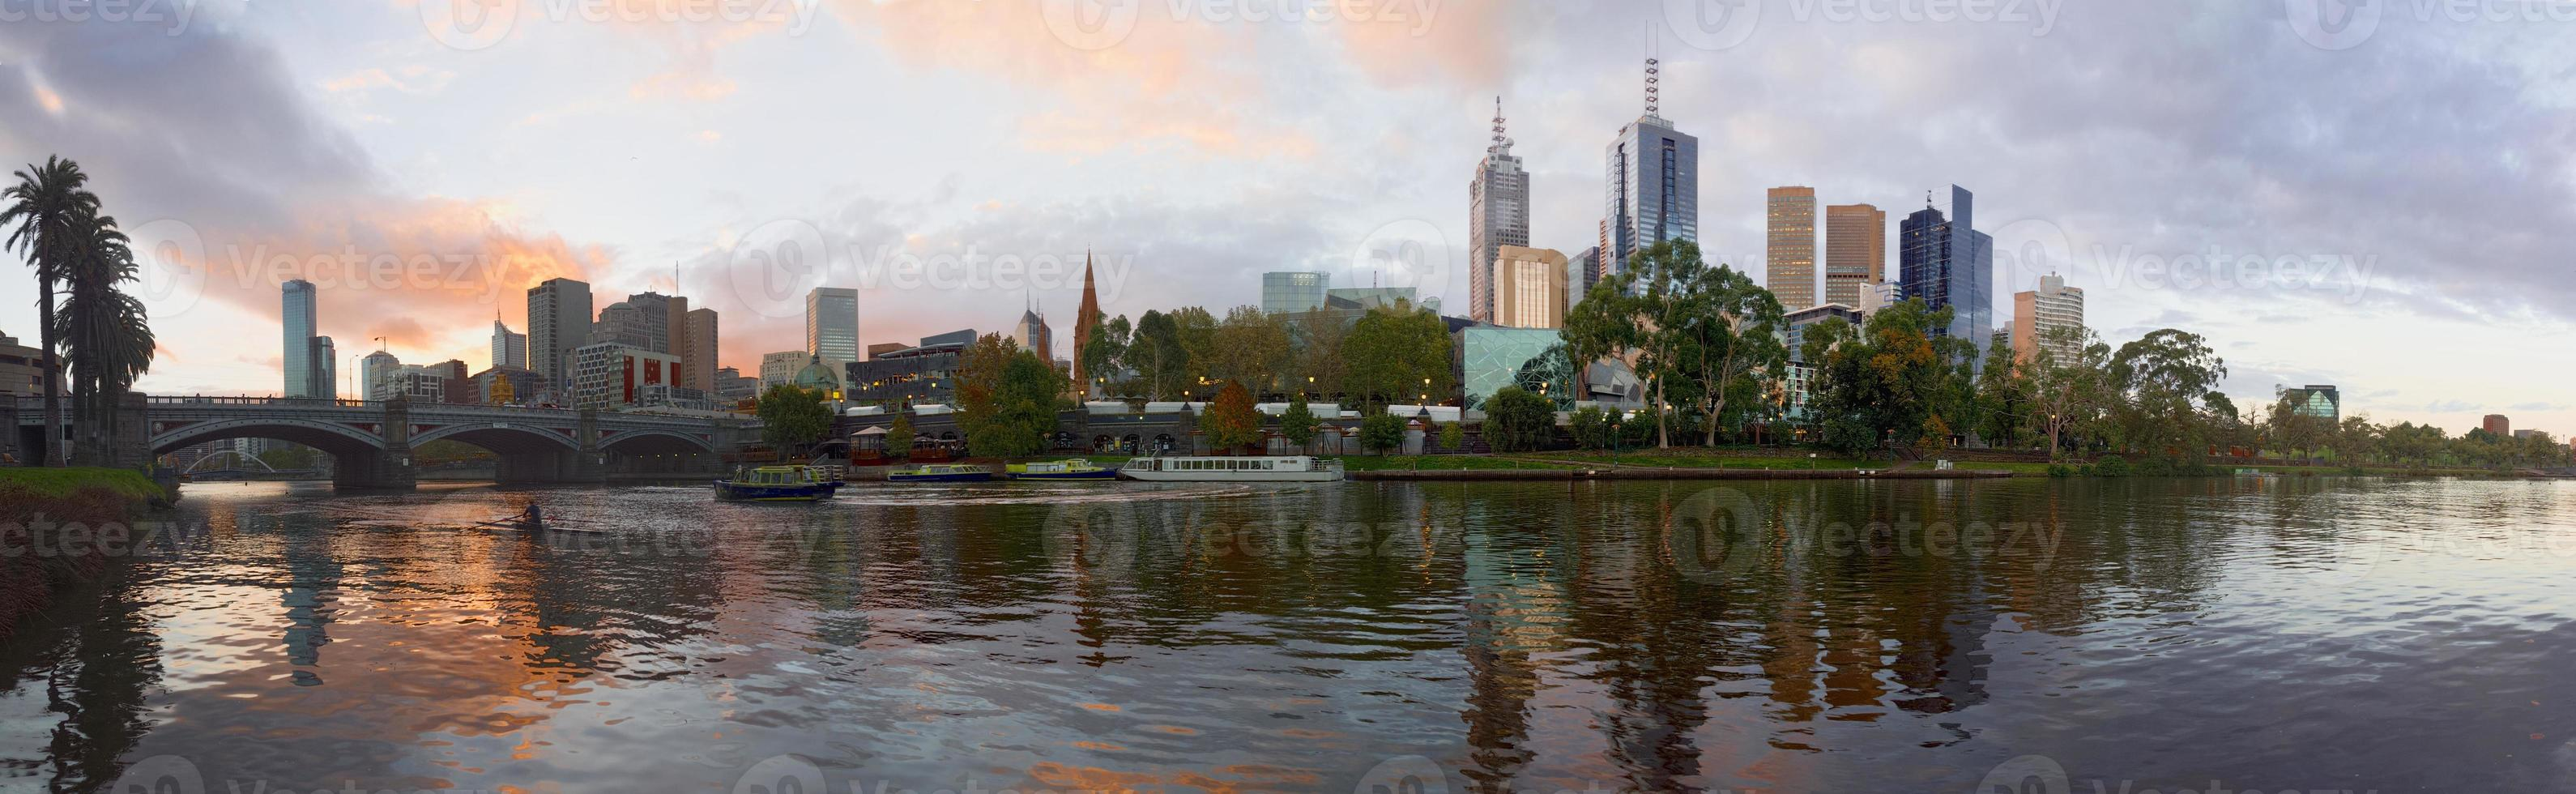 melbourne and the yarra river photo